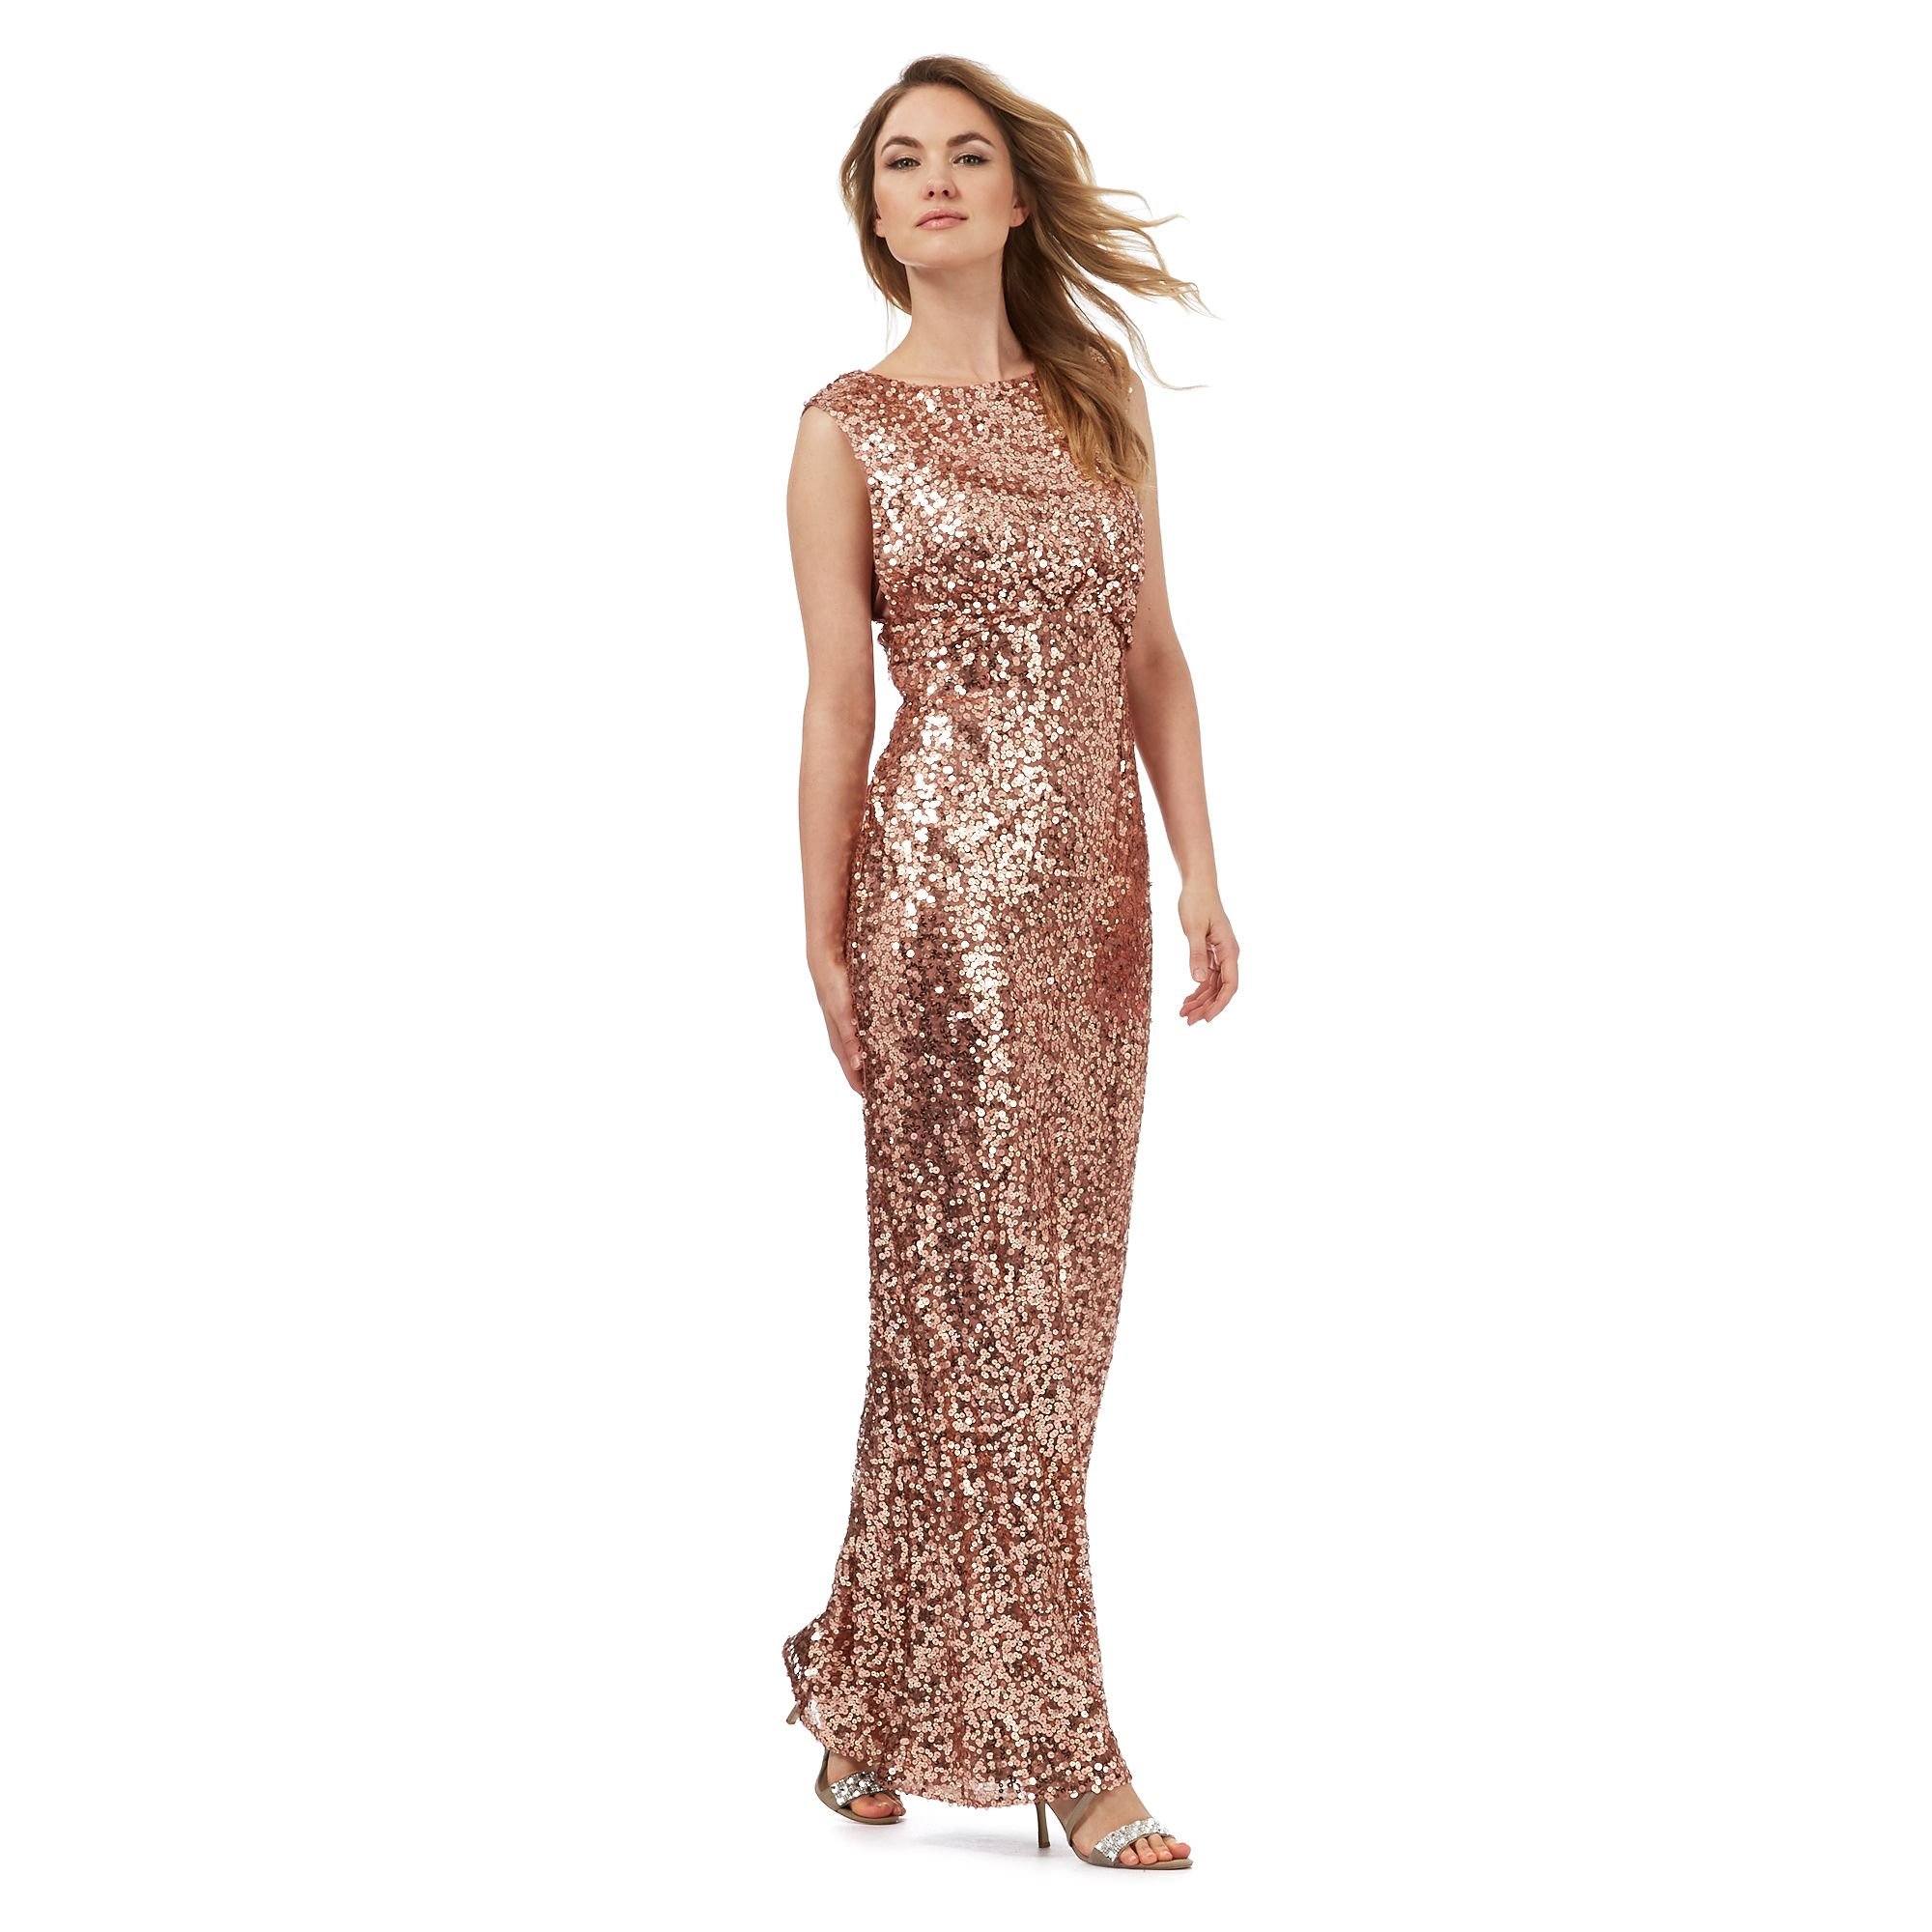 Lastest 193 Red Prom Dresses  Long VNeck Sequin Dress With Open Back By